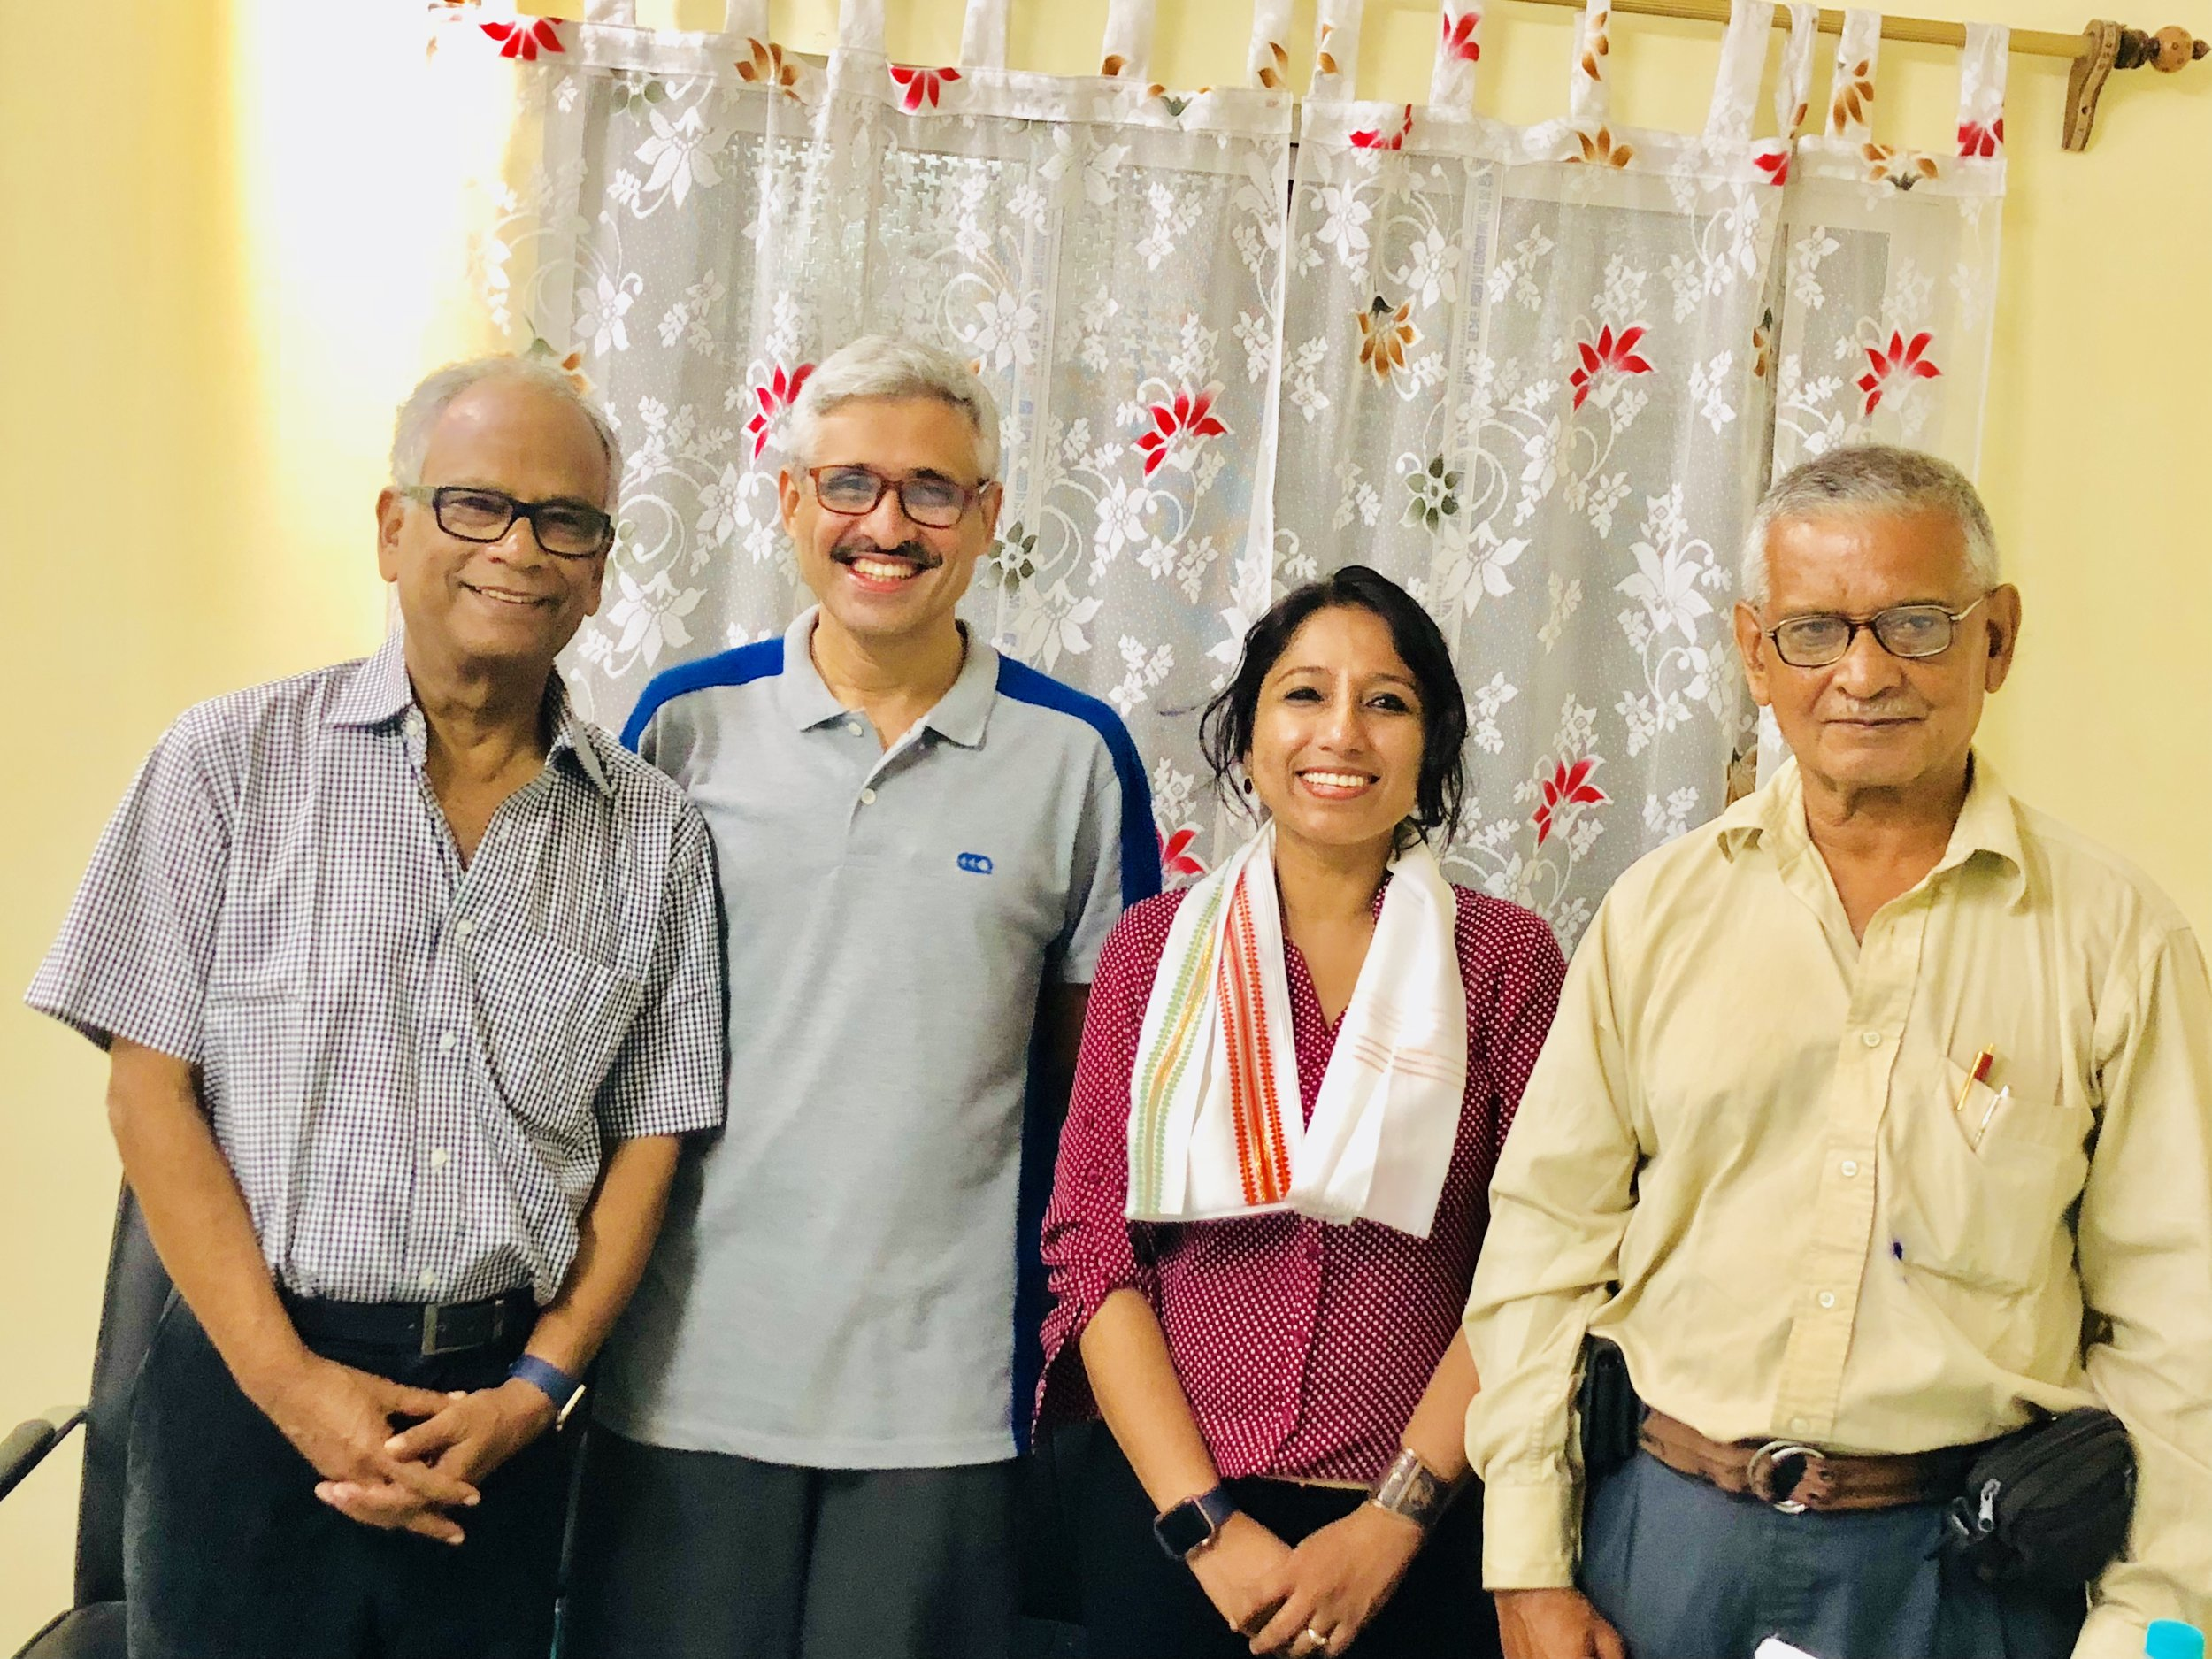 I was so honored that Dr. Bhattacharya invited Dr. Kumar Kanti Das (Dr. Lakhan Das), Director, Kalyani Hospital and Dr. Ravi Kannan, Director, Cachar Cancer Hospital and Research Center to chair the talk/session. It was a great feeling for me to receive the words of encouragement and positive feedback from Dr. Kannan and Dr. K. K Das, whose selfless service to mankind speaks no bounds. It was also my immense privilege to have Dr. Chandra Sekhar Das (my father), Retired HOD, Silchar Medical College, Dept of Pediatrics and now Senior Consultant to be present in the audience